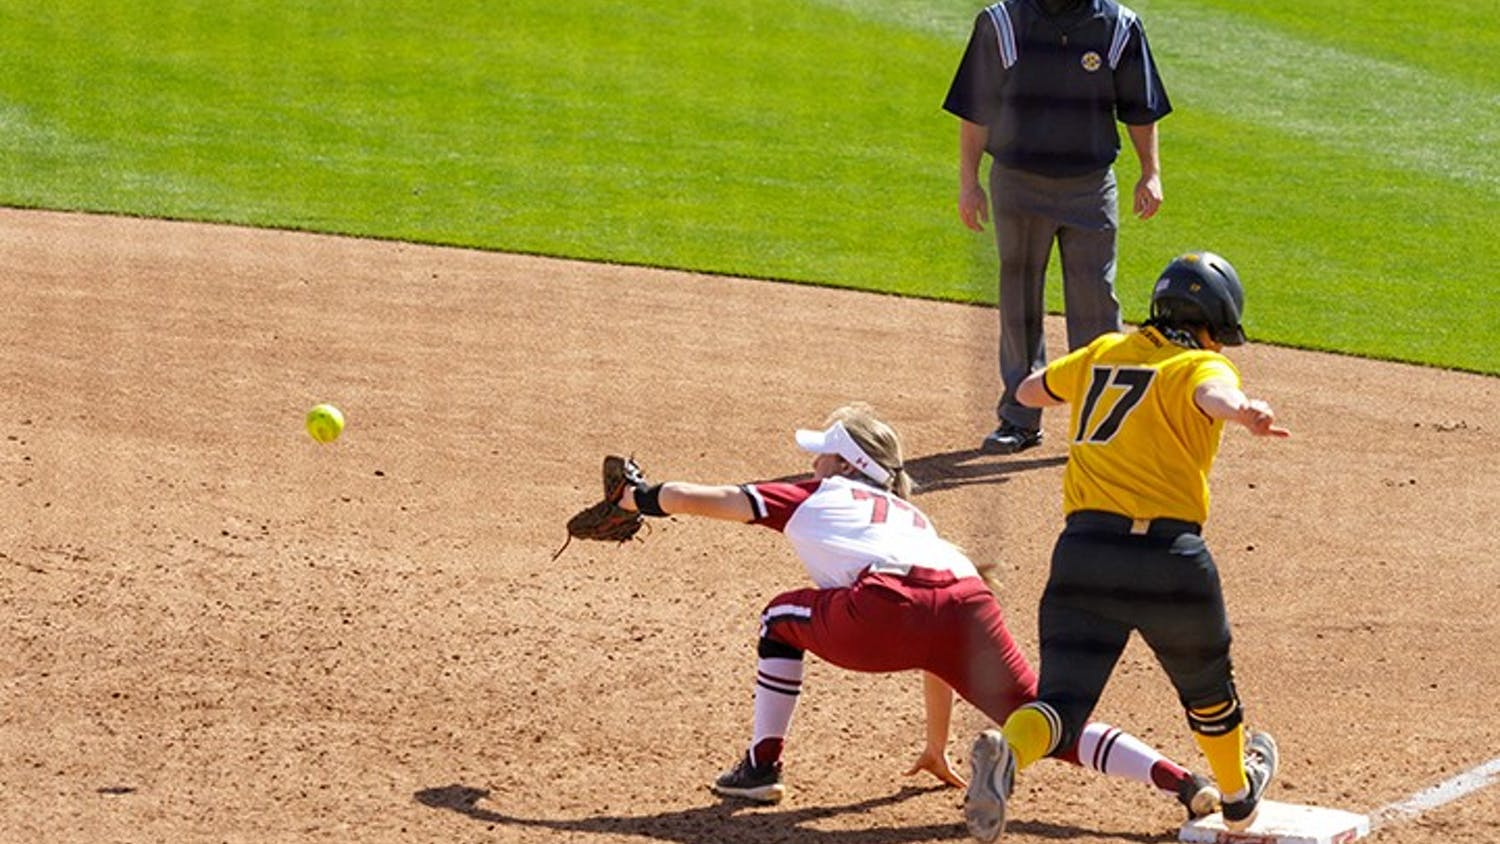 Junior infielder Kassidy Krupit stretches out in hopes of getting Missouri's batter out at first base.